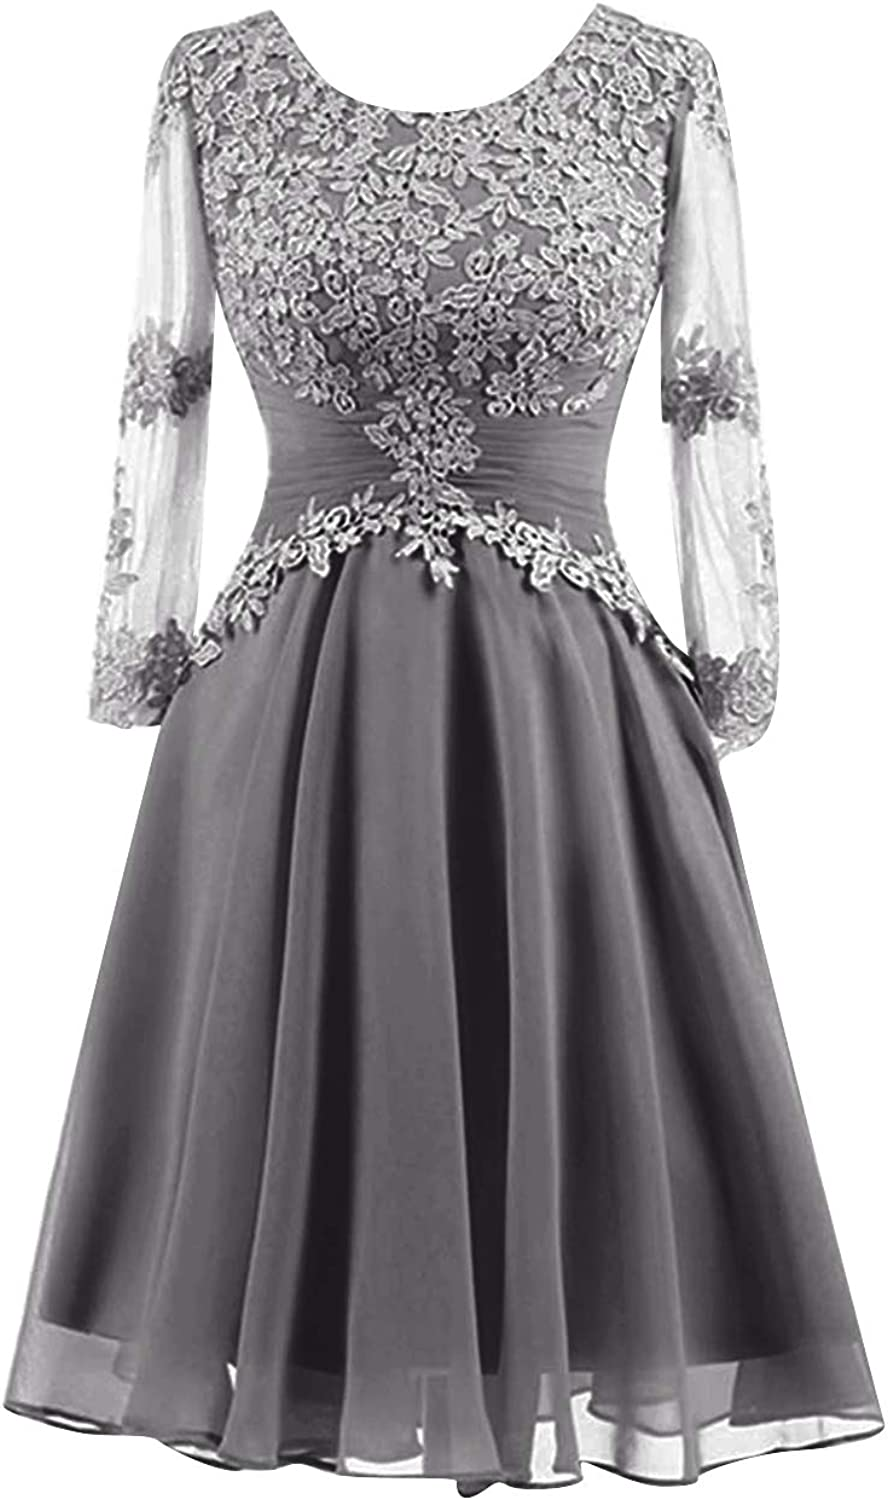 H.S.D Mother of The Bride Dress Short Mother Dresses Lace Evening Formal Gowns Sleeve